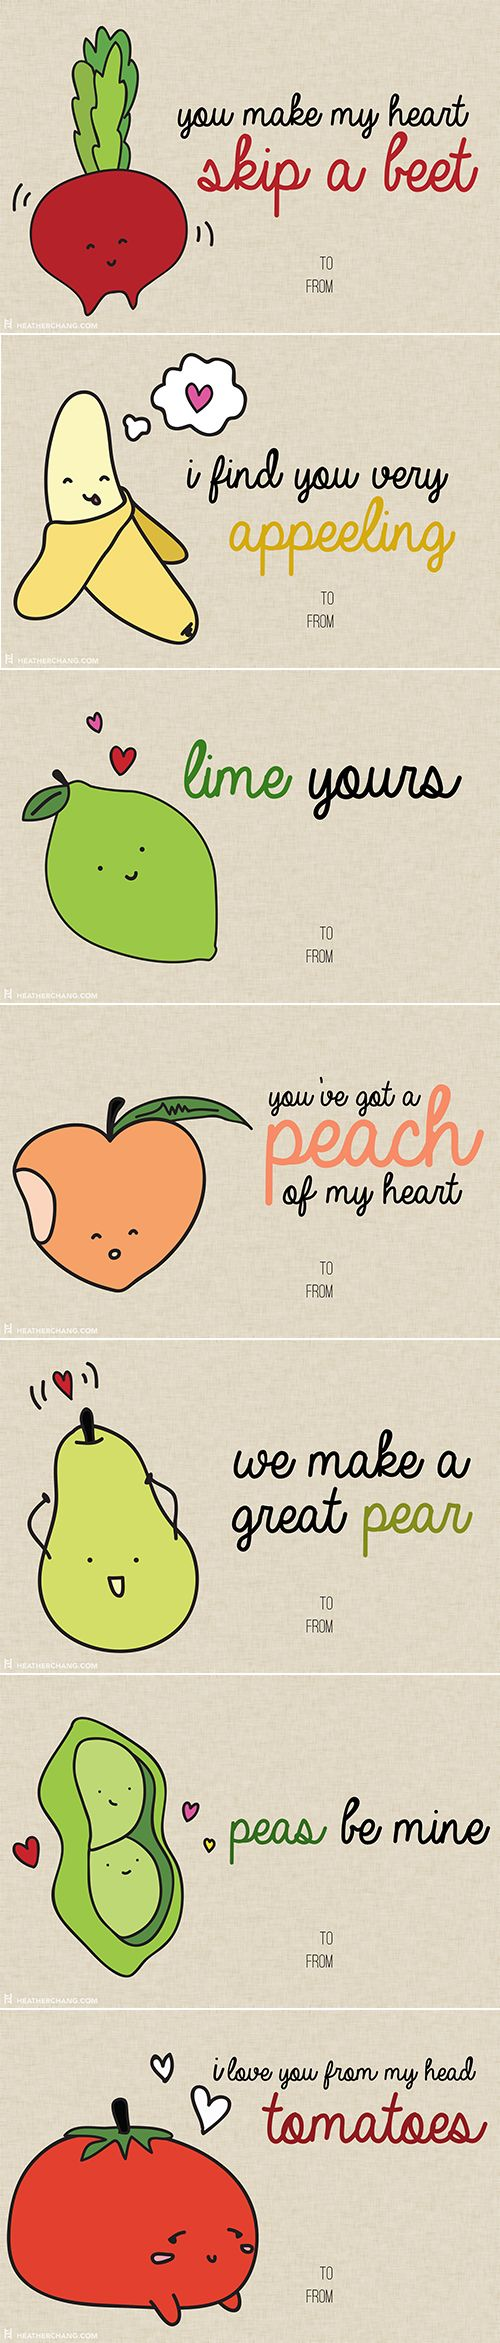 best 25 vegetable puns ideas on pinterest fruit puns food puns